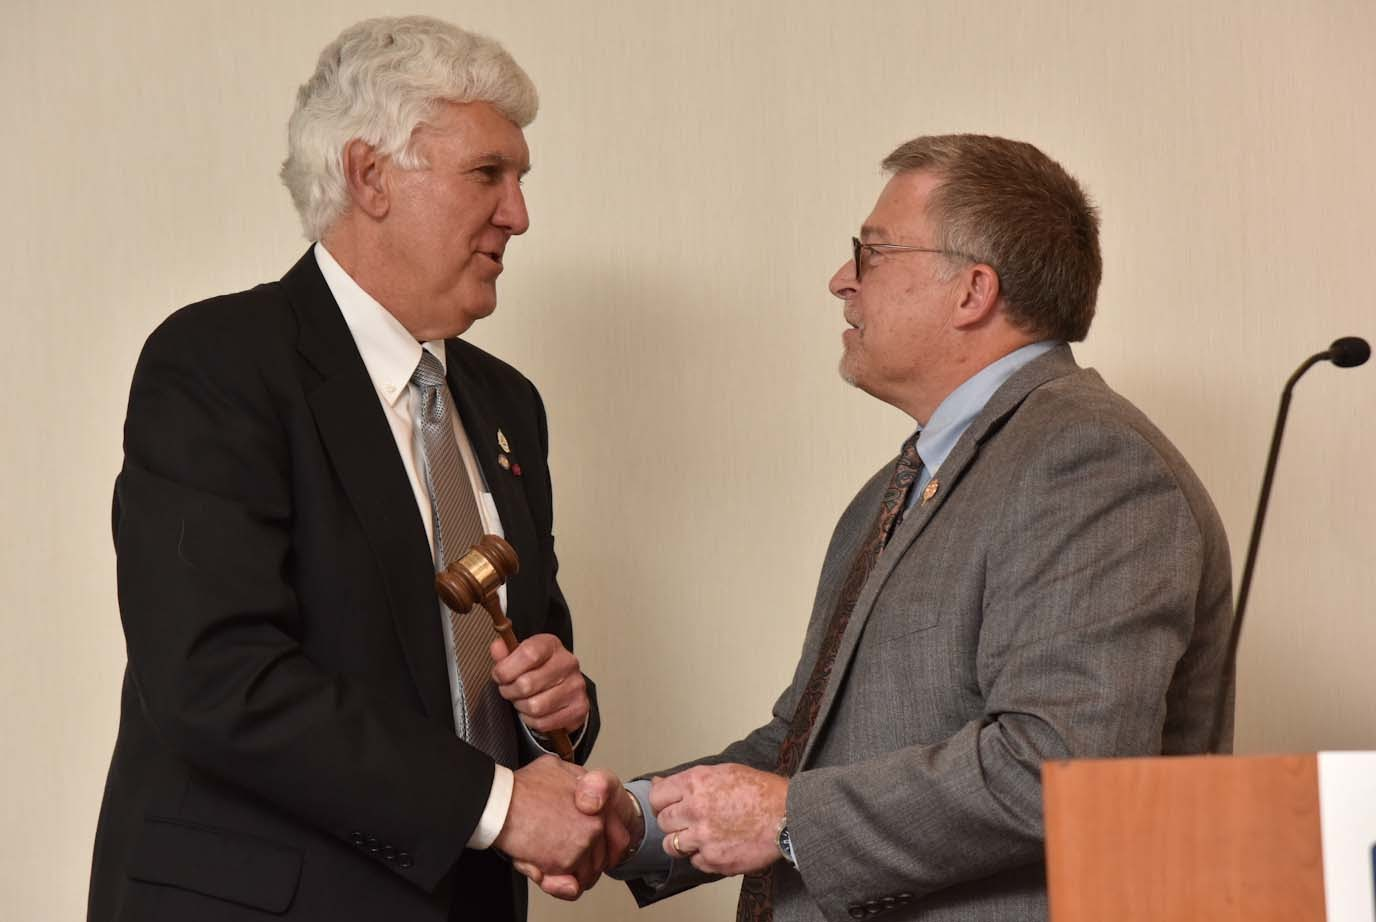 John Fales, Nick Rogers passing of gavel